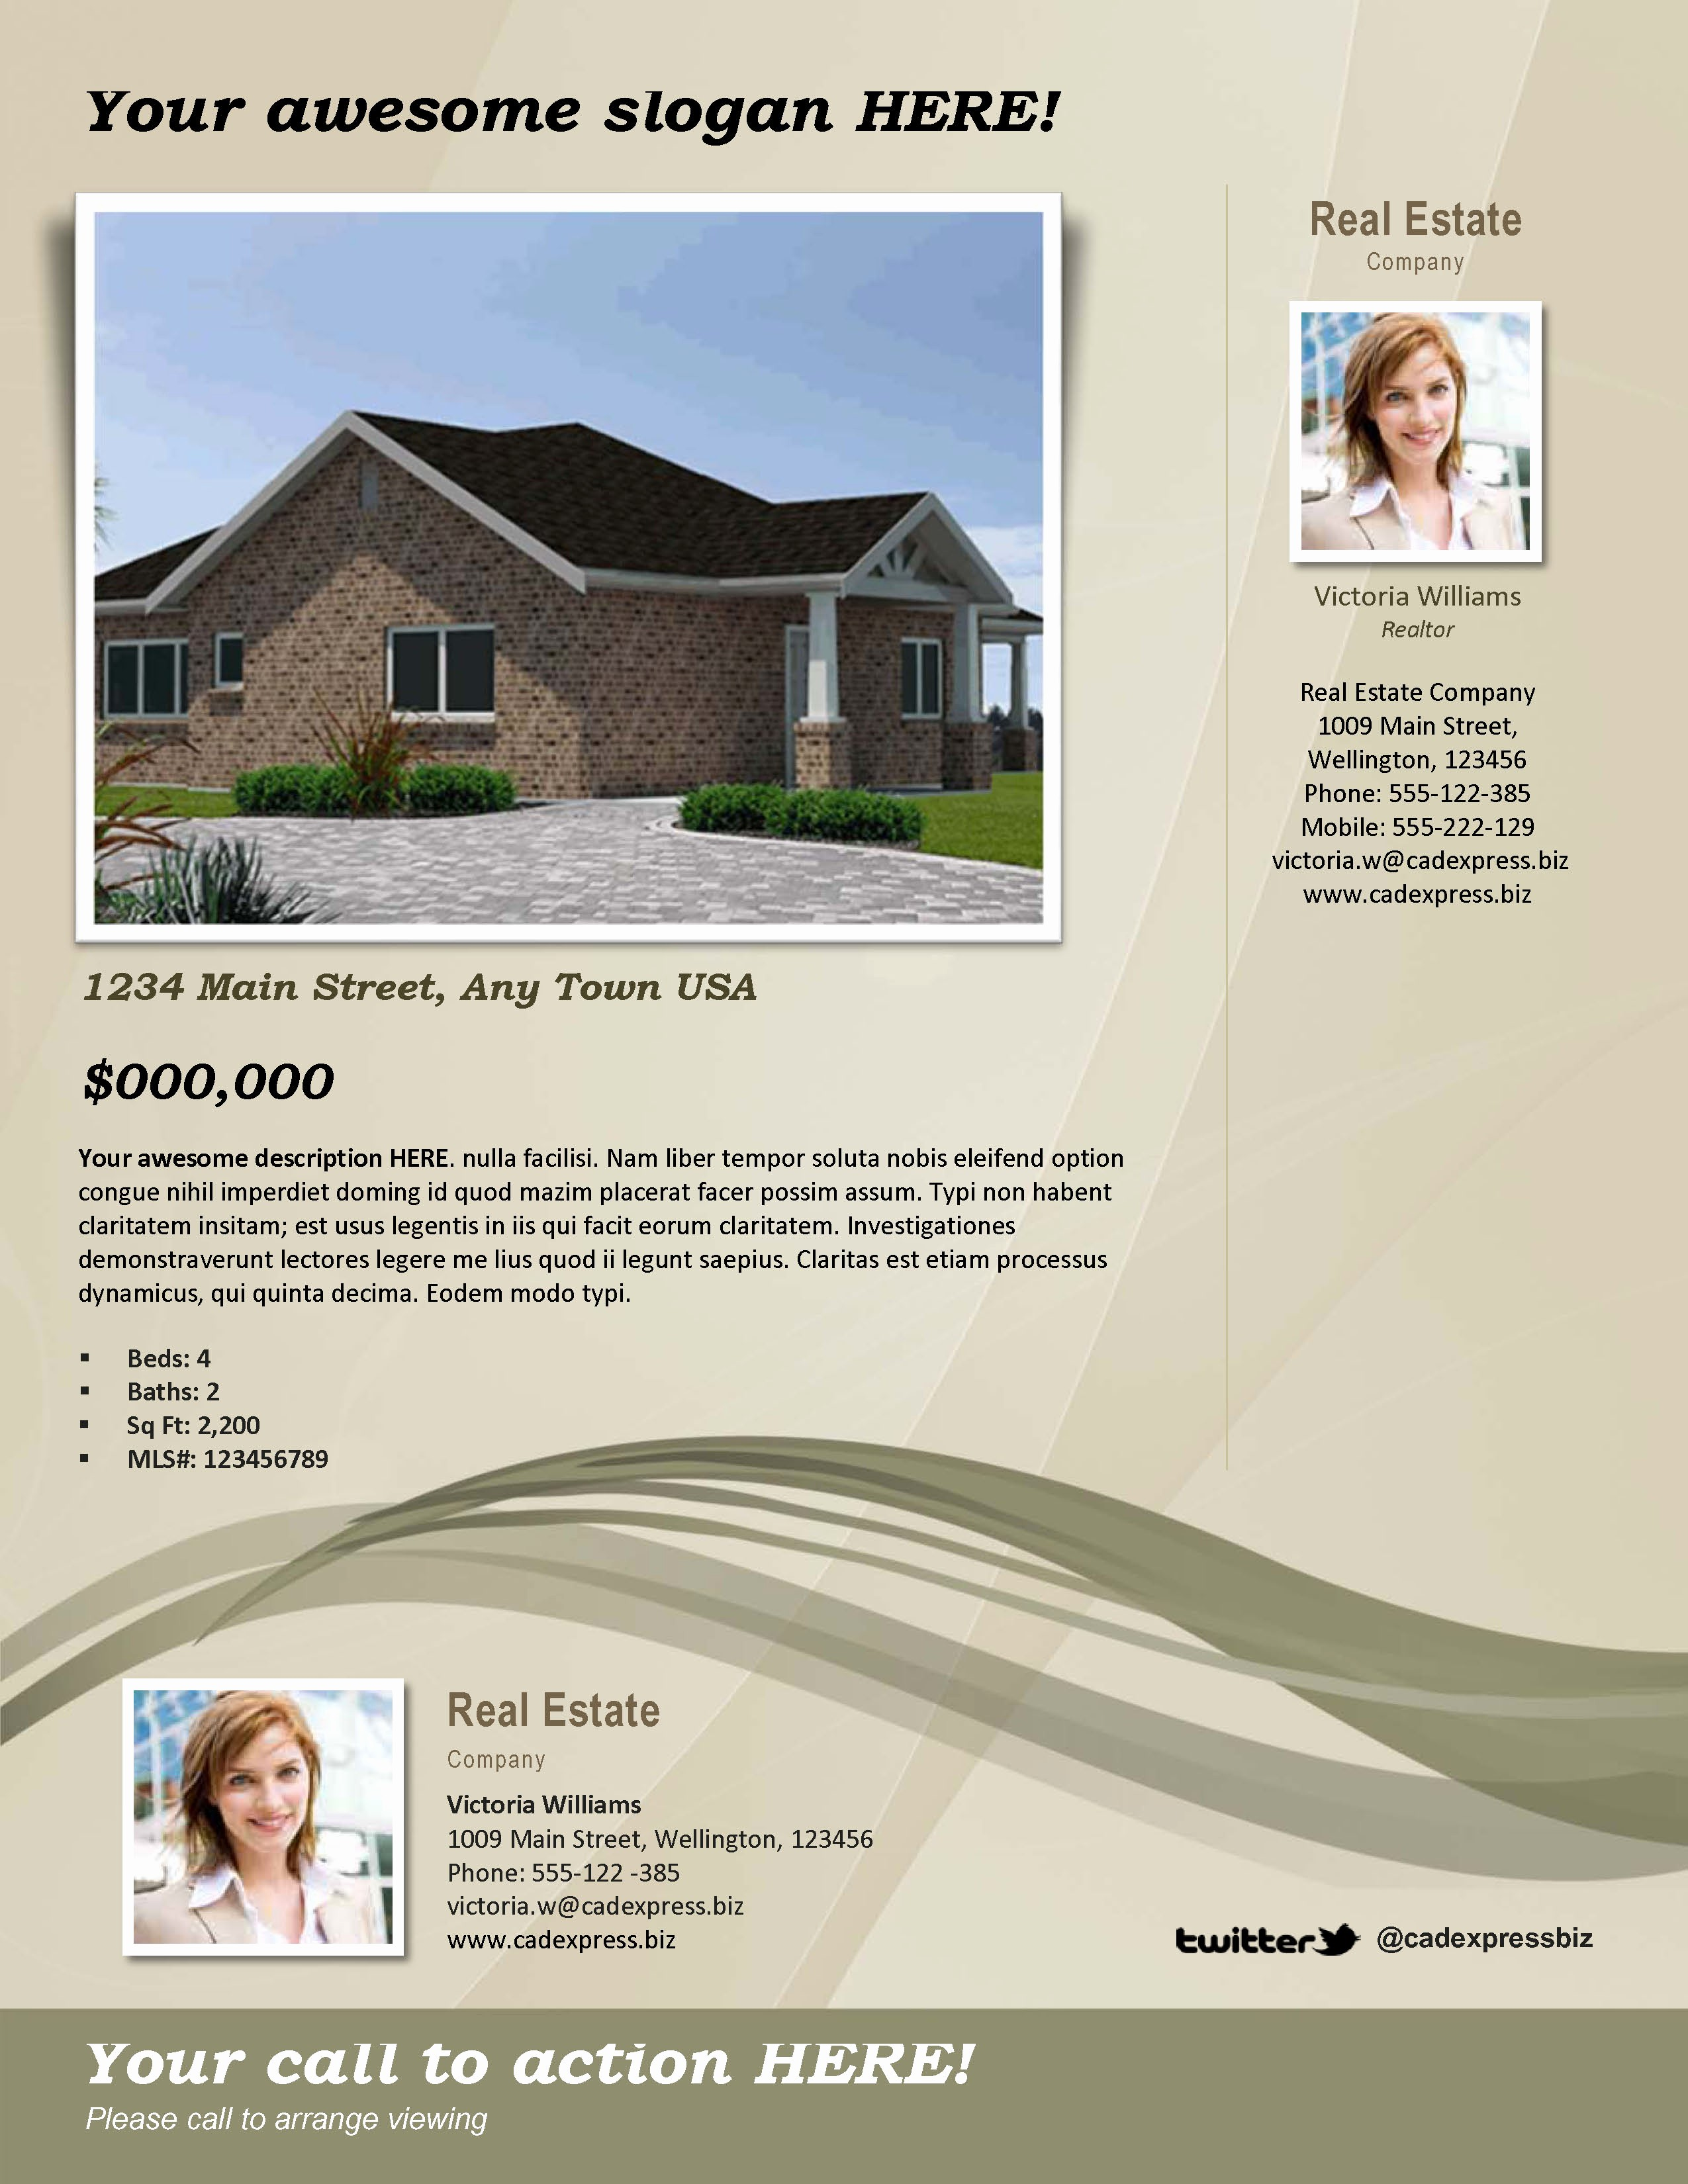 House for Sale Flyer Template Inspirational 10 Best Of Home by Owner Brochure Template for